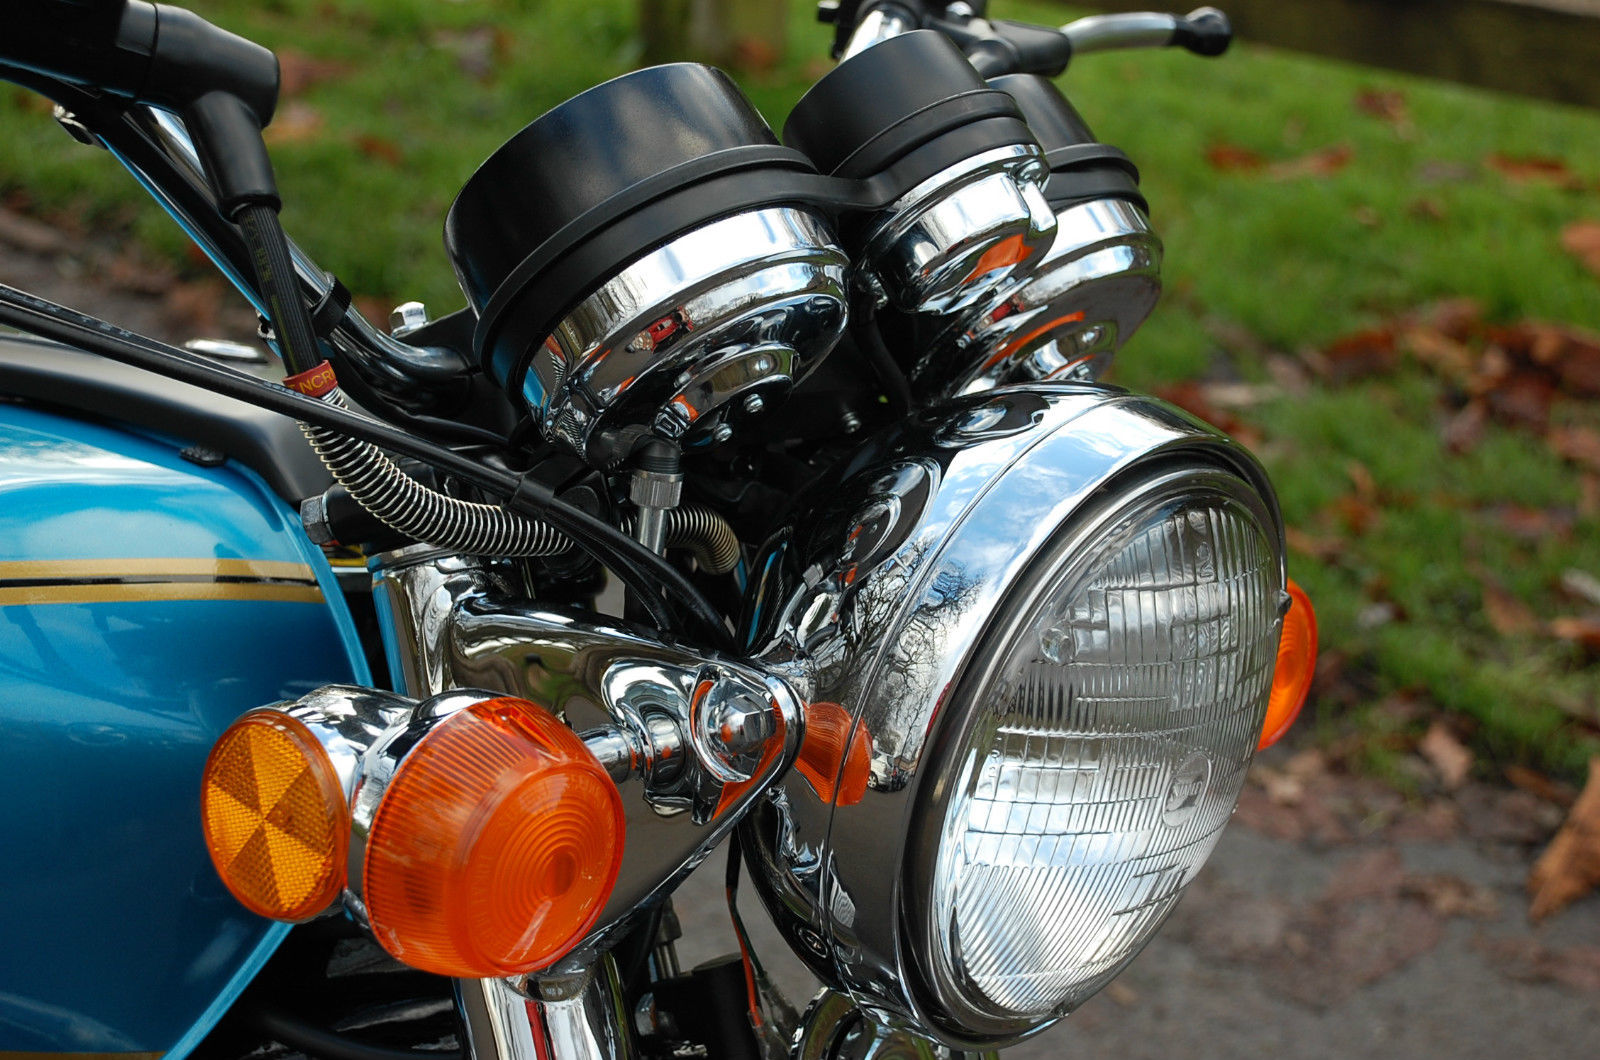 Suzuki GT750 - 1975 - Headlight, Indicator, Clocks and Reflector.